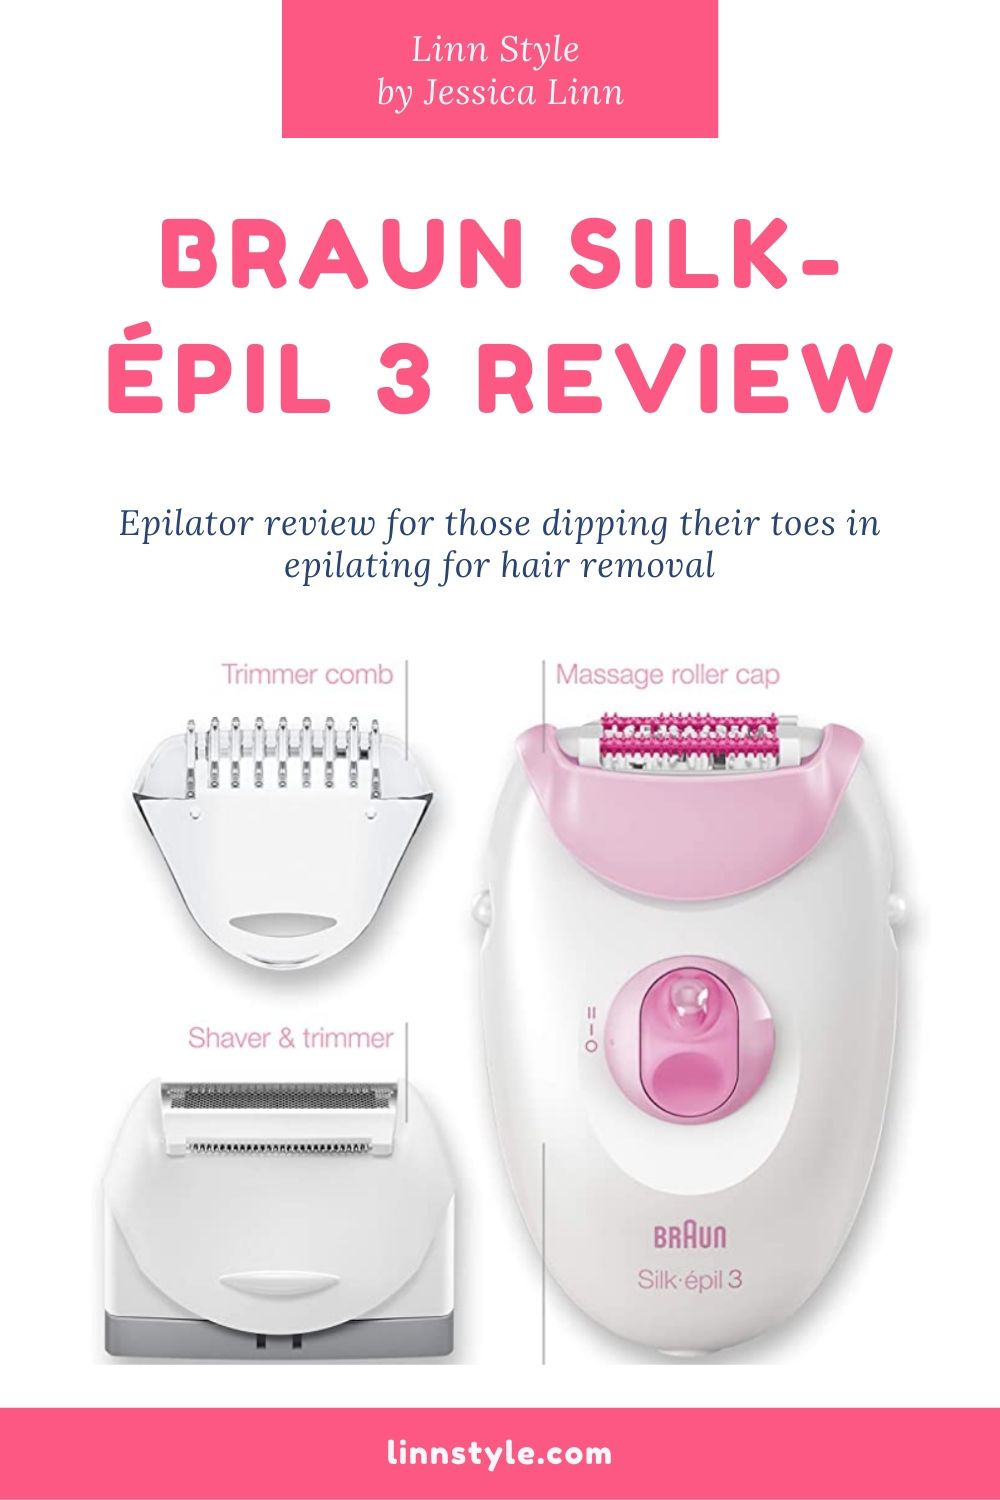 Braun Silk-epil 3 Epilator Review | Linn Style by Jessica Linn